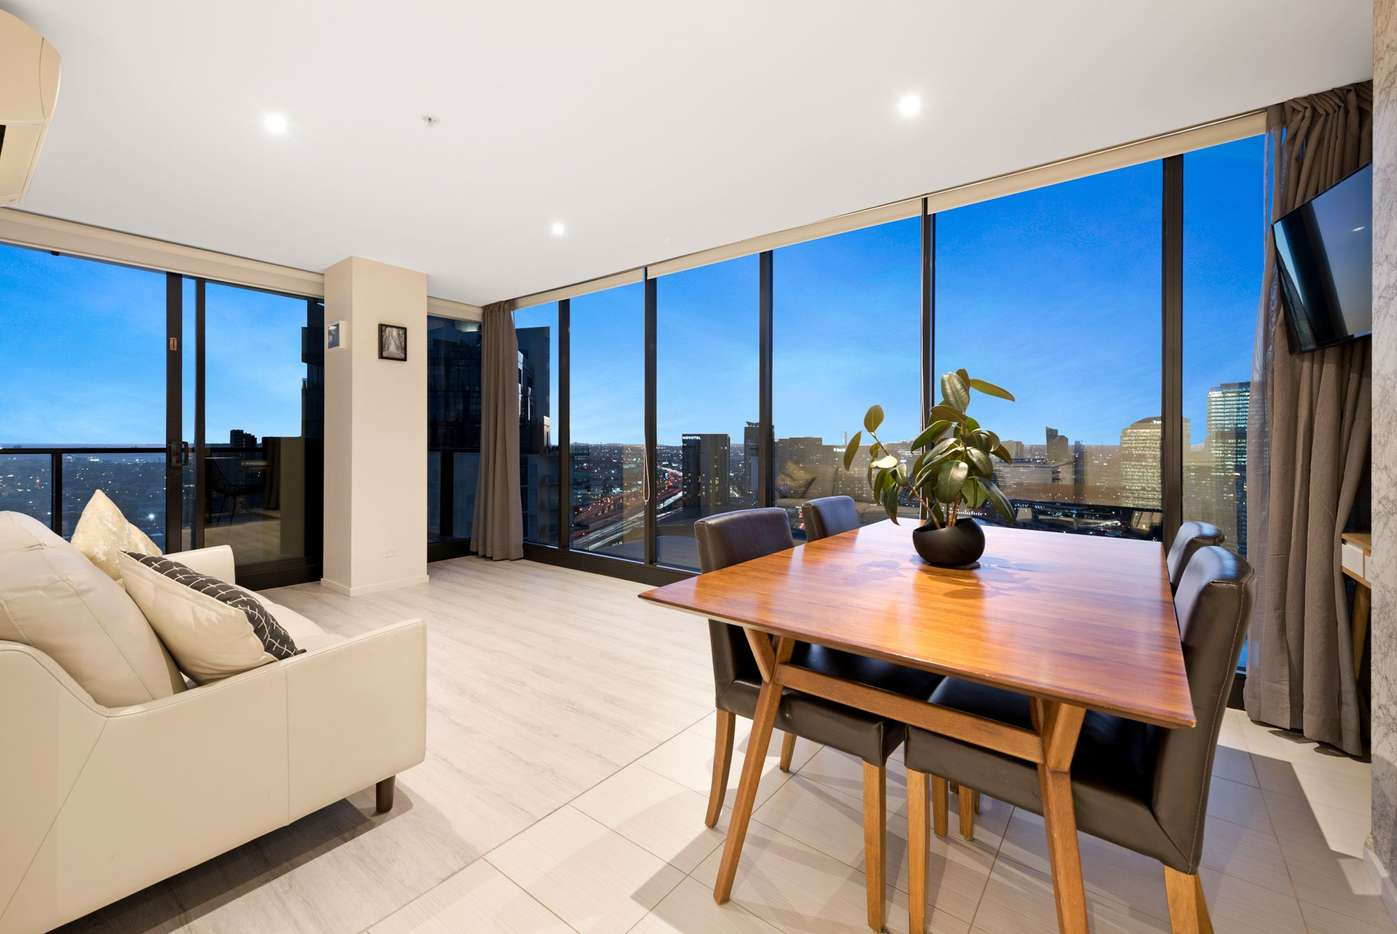 Main view of Homely apartment listing, 2806/46-50 Haig Street, Southbank, VIC 3006